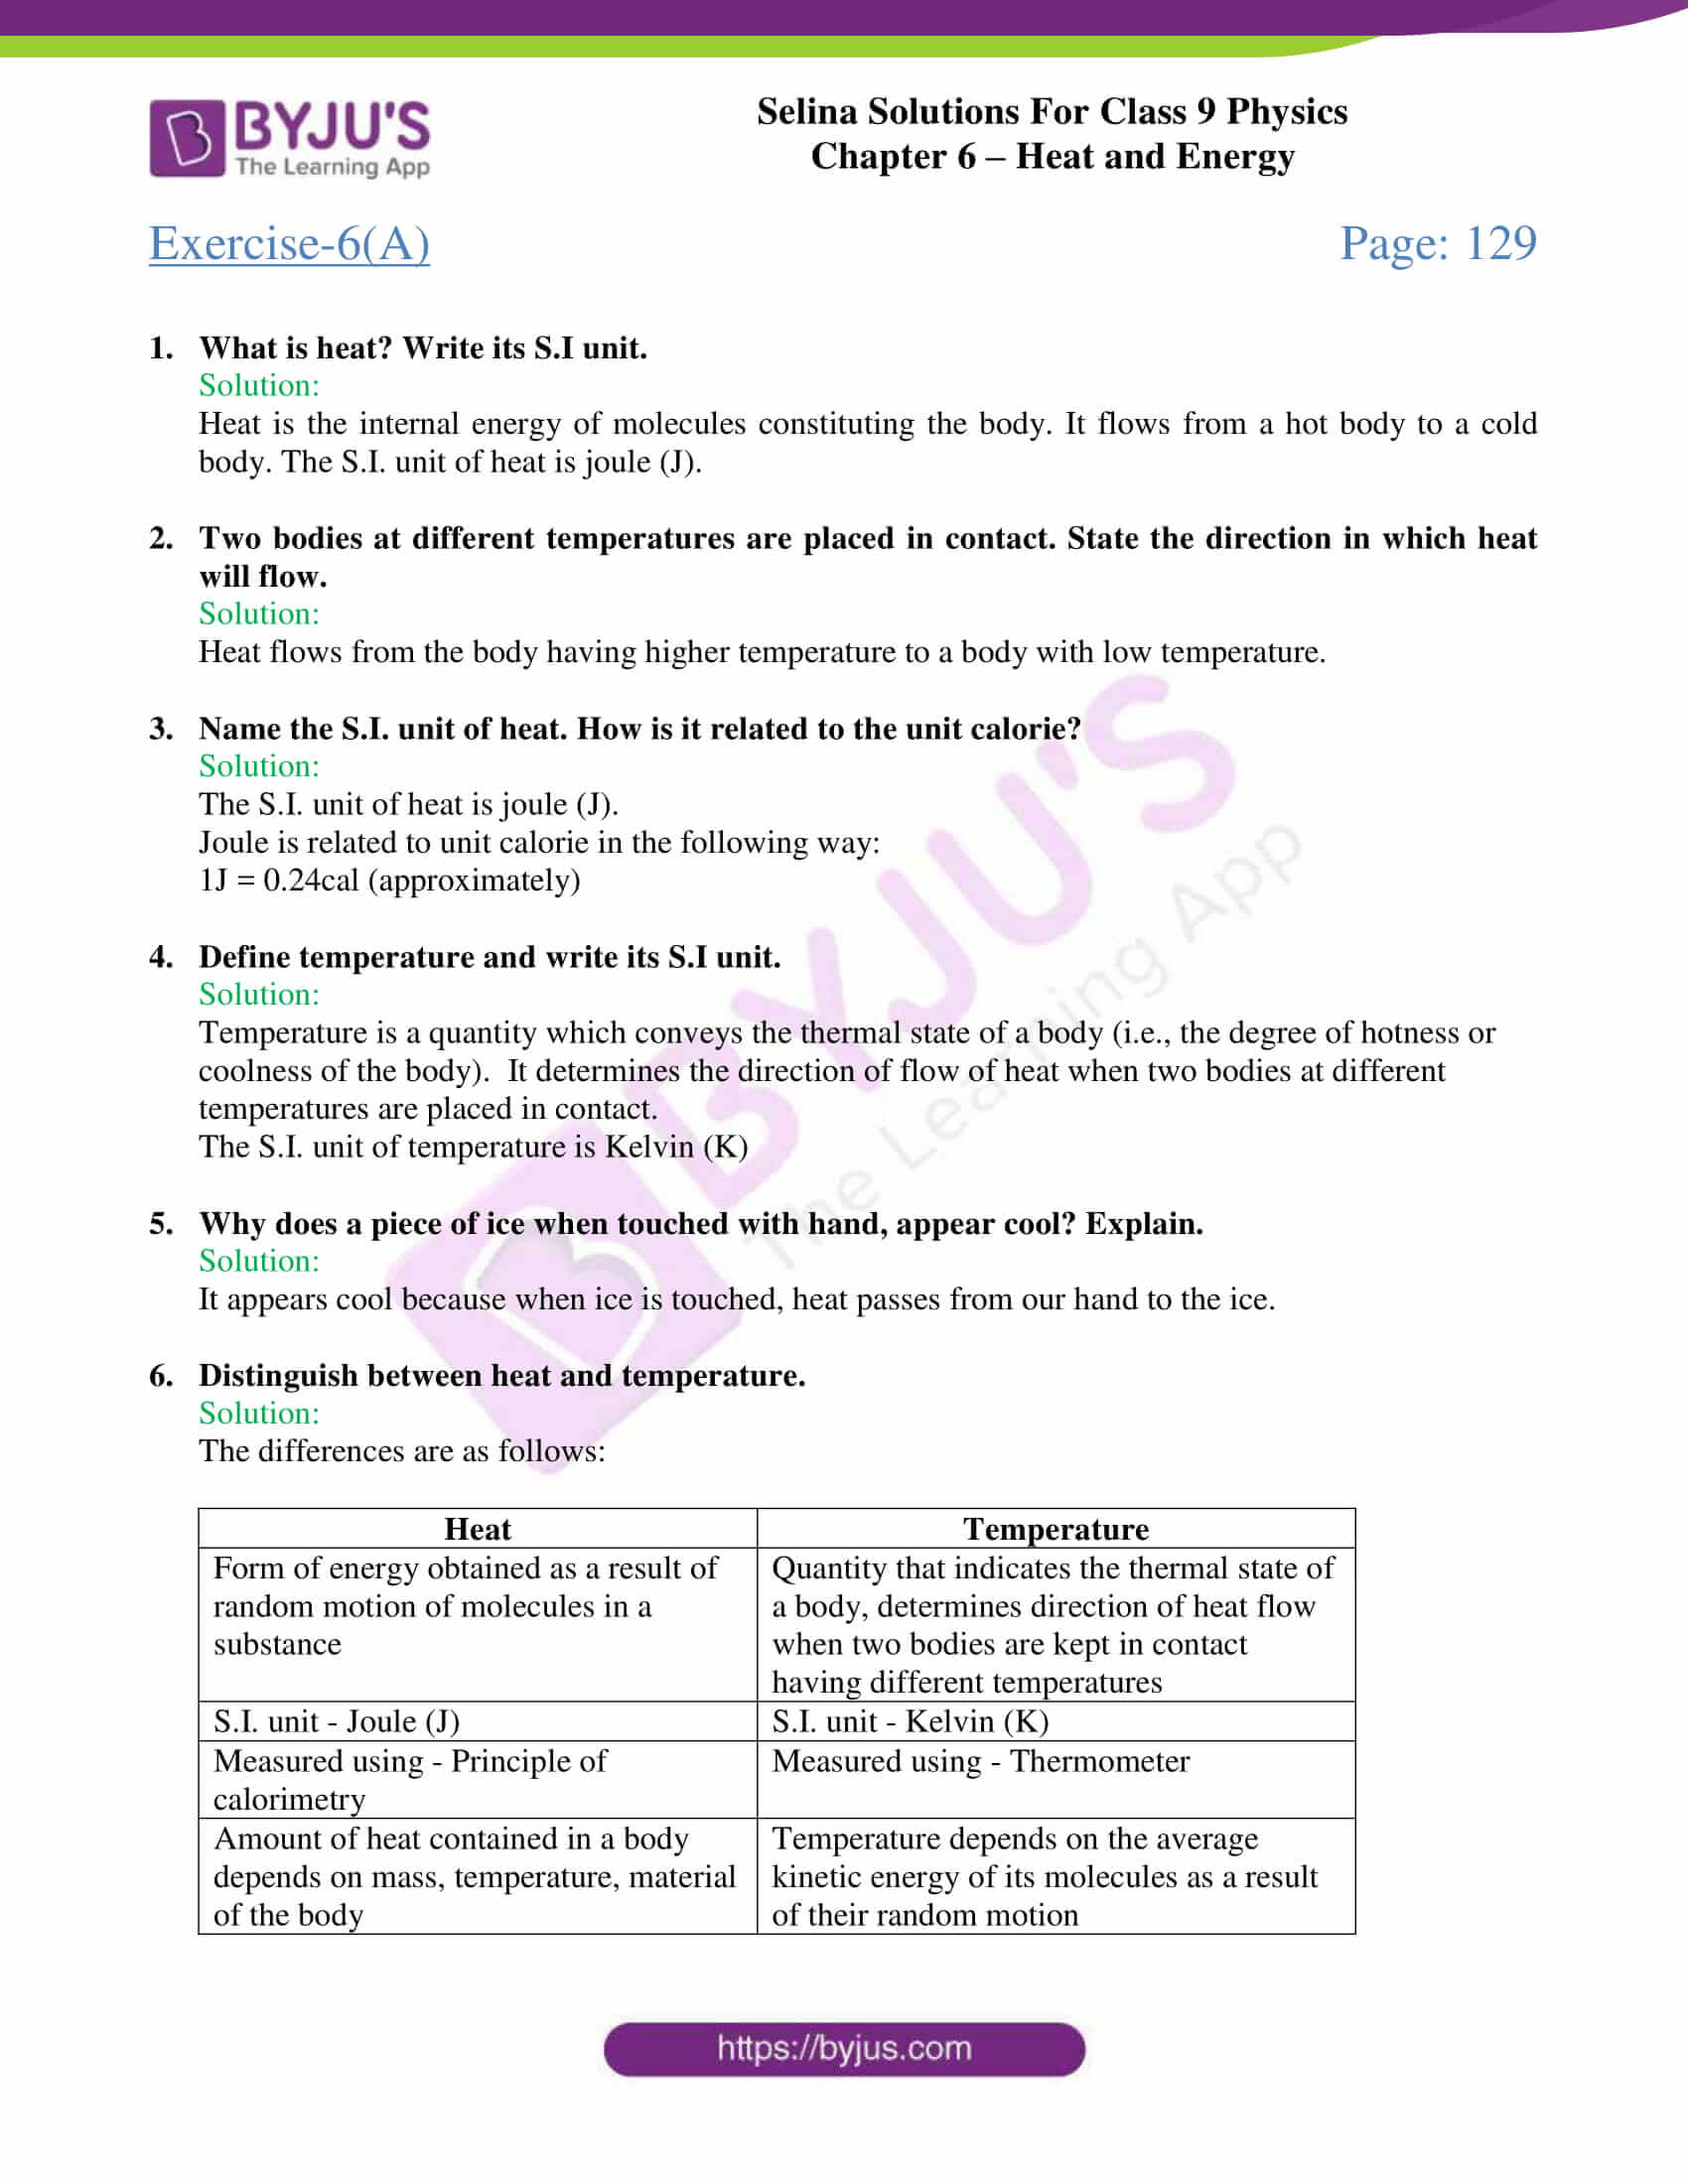 selina solutions class 9 physics chapter 6 Heat and Energy part 01